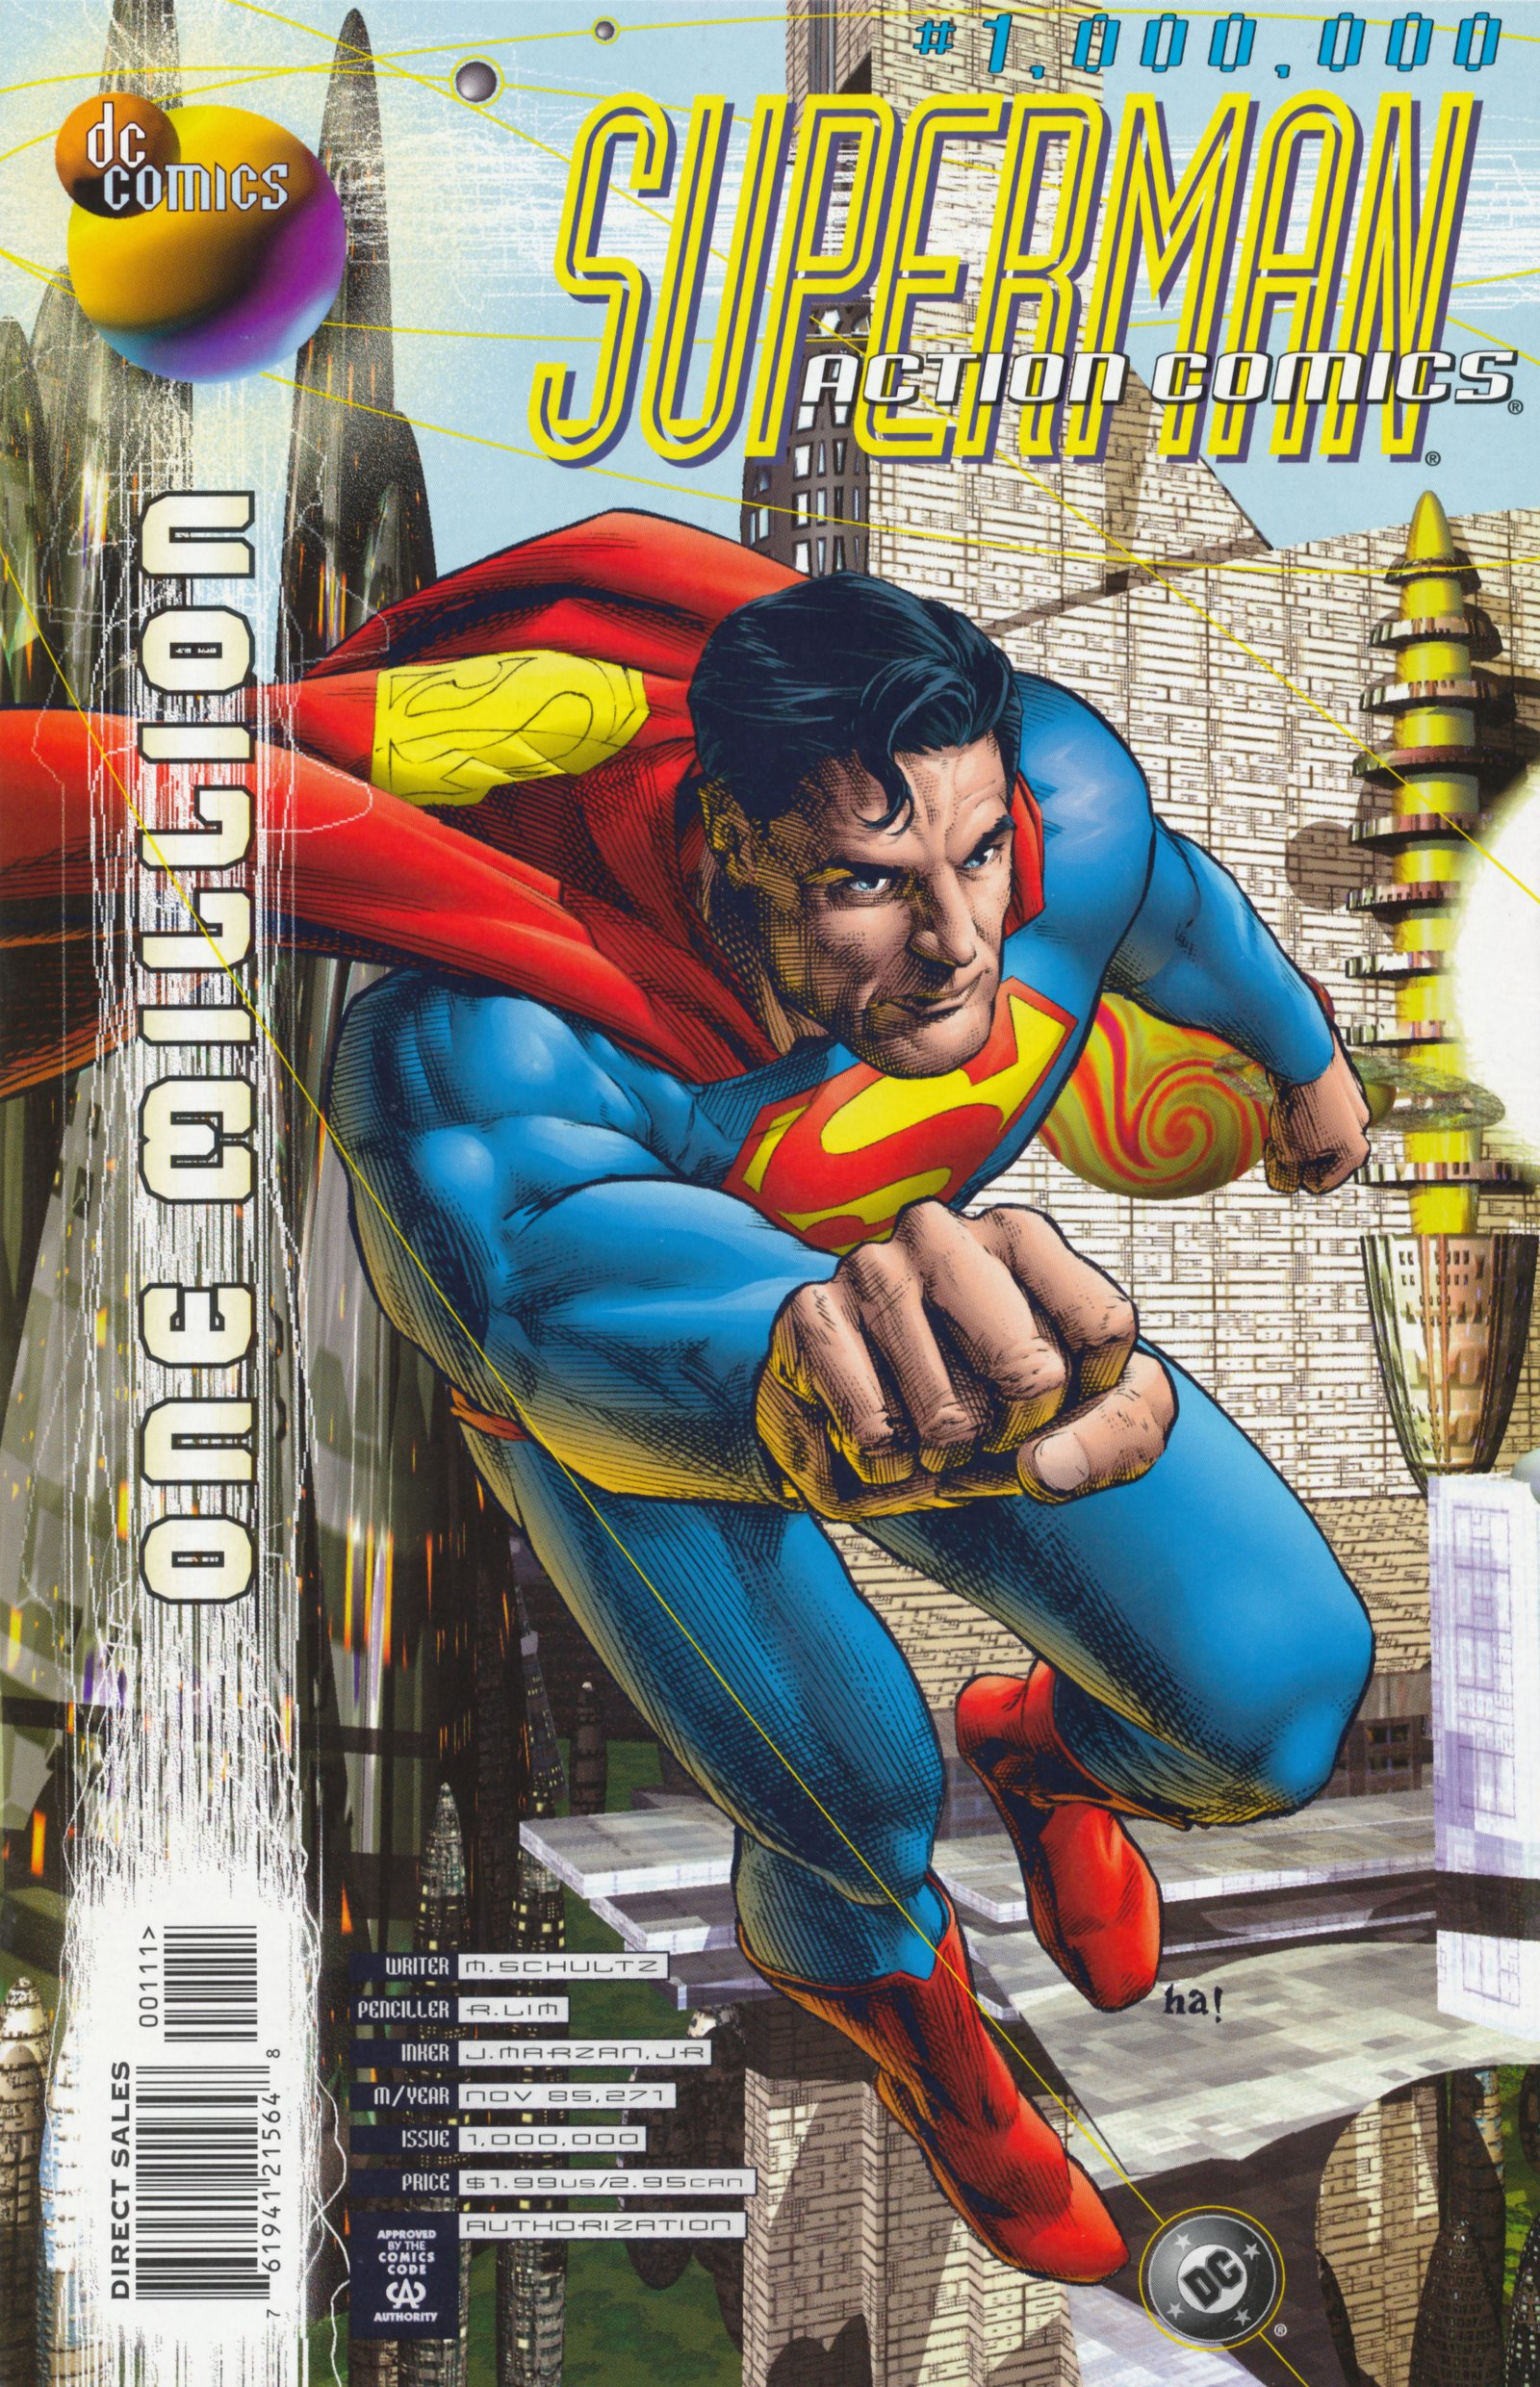 Read online Action Comics (1938) comic -  Issue #1,000,000 - 1